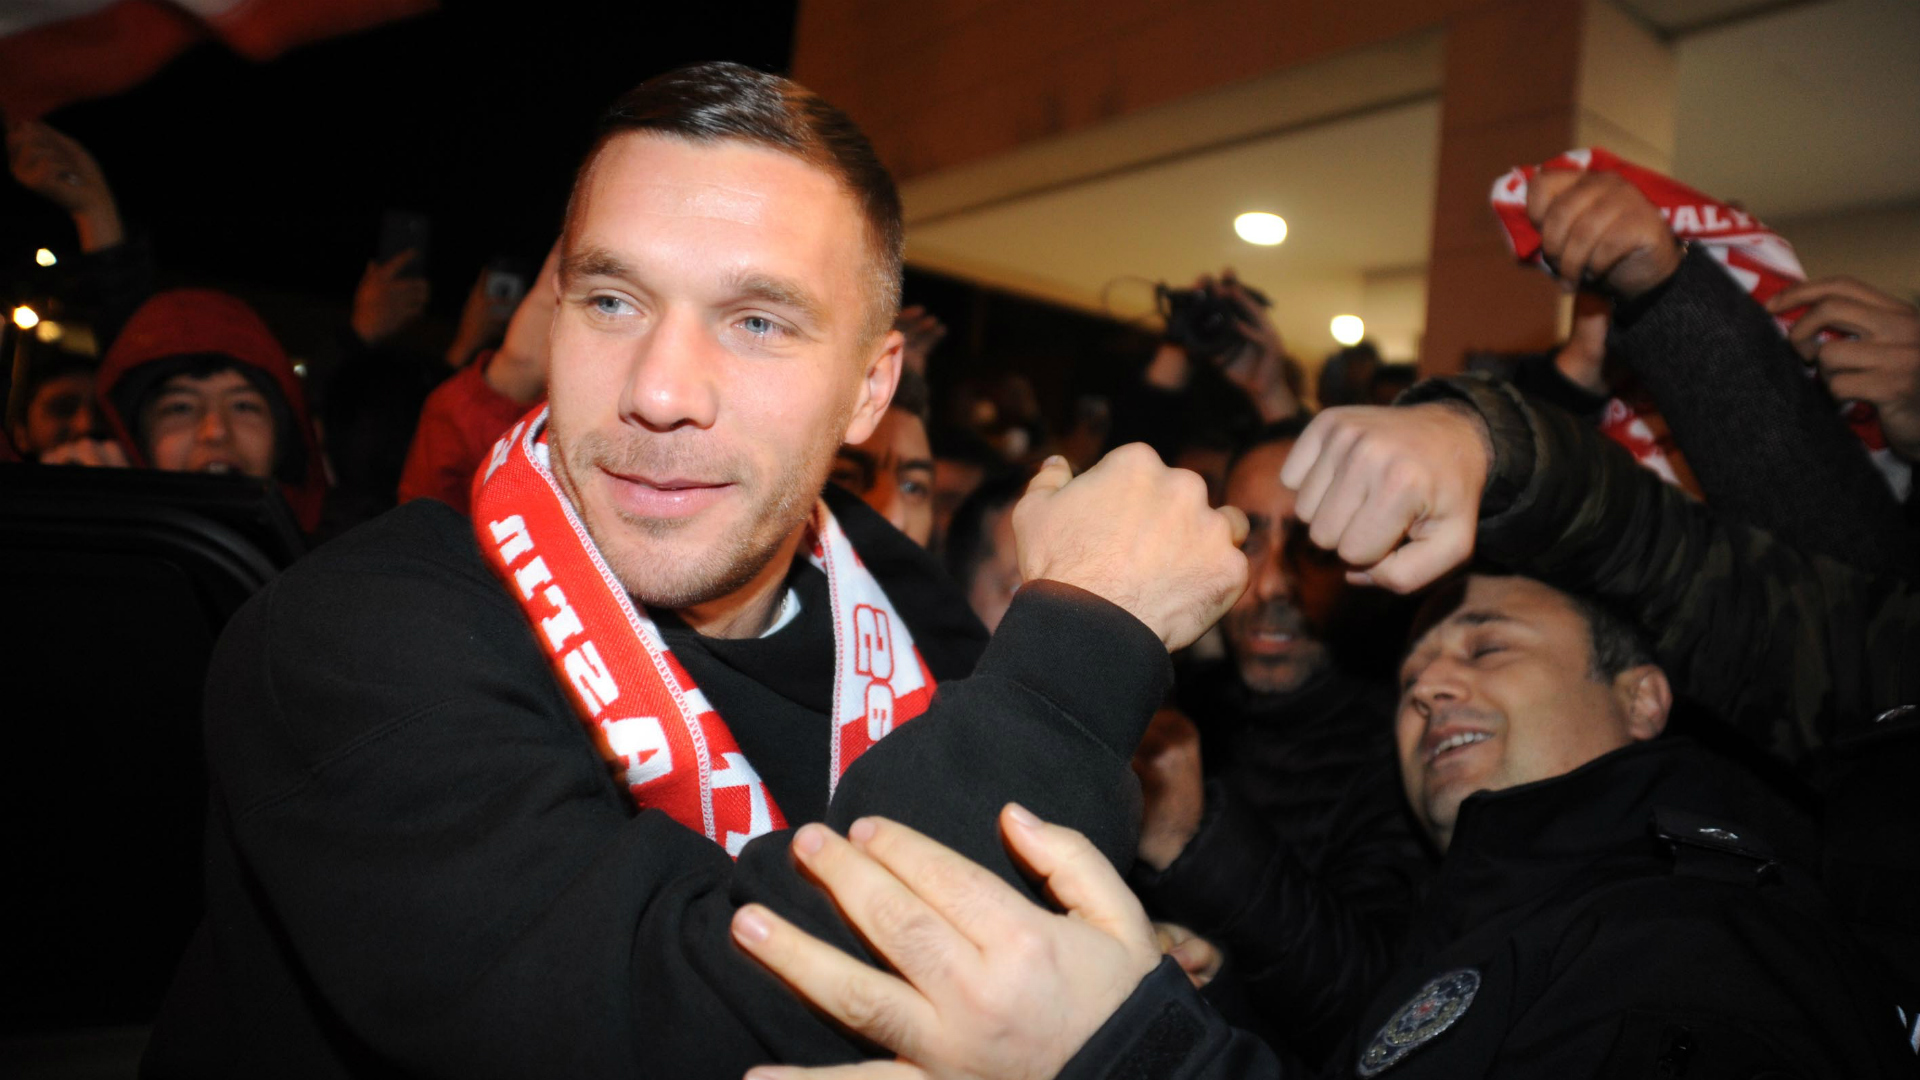 Podolski set for new destination, but it won't be to Malaysia